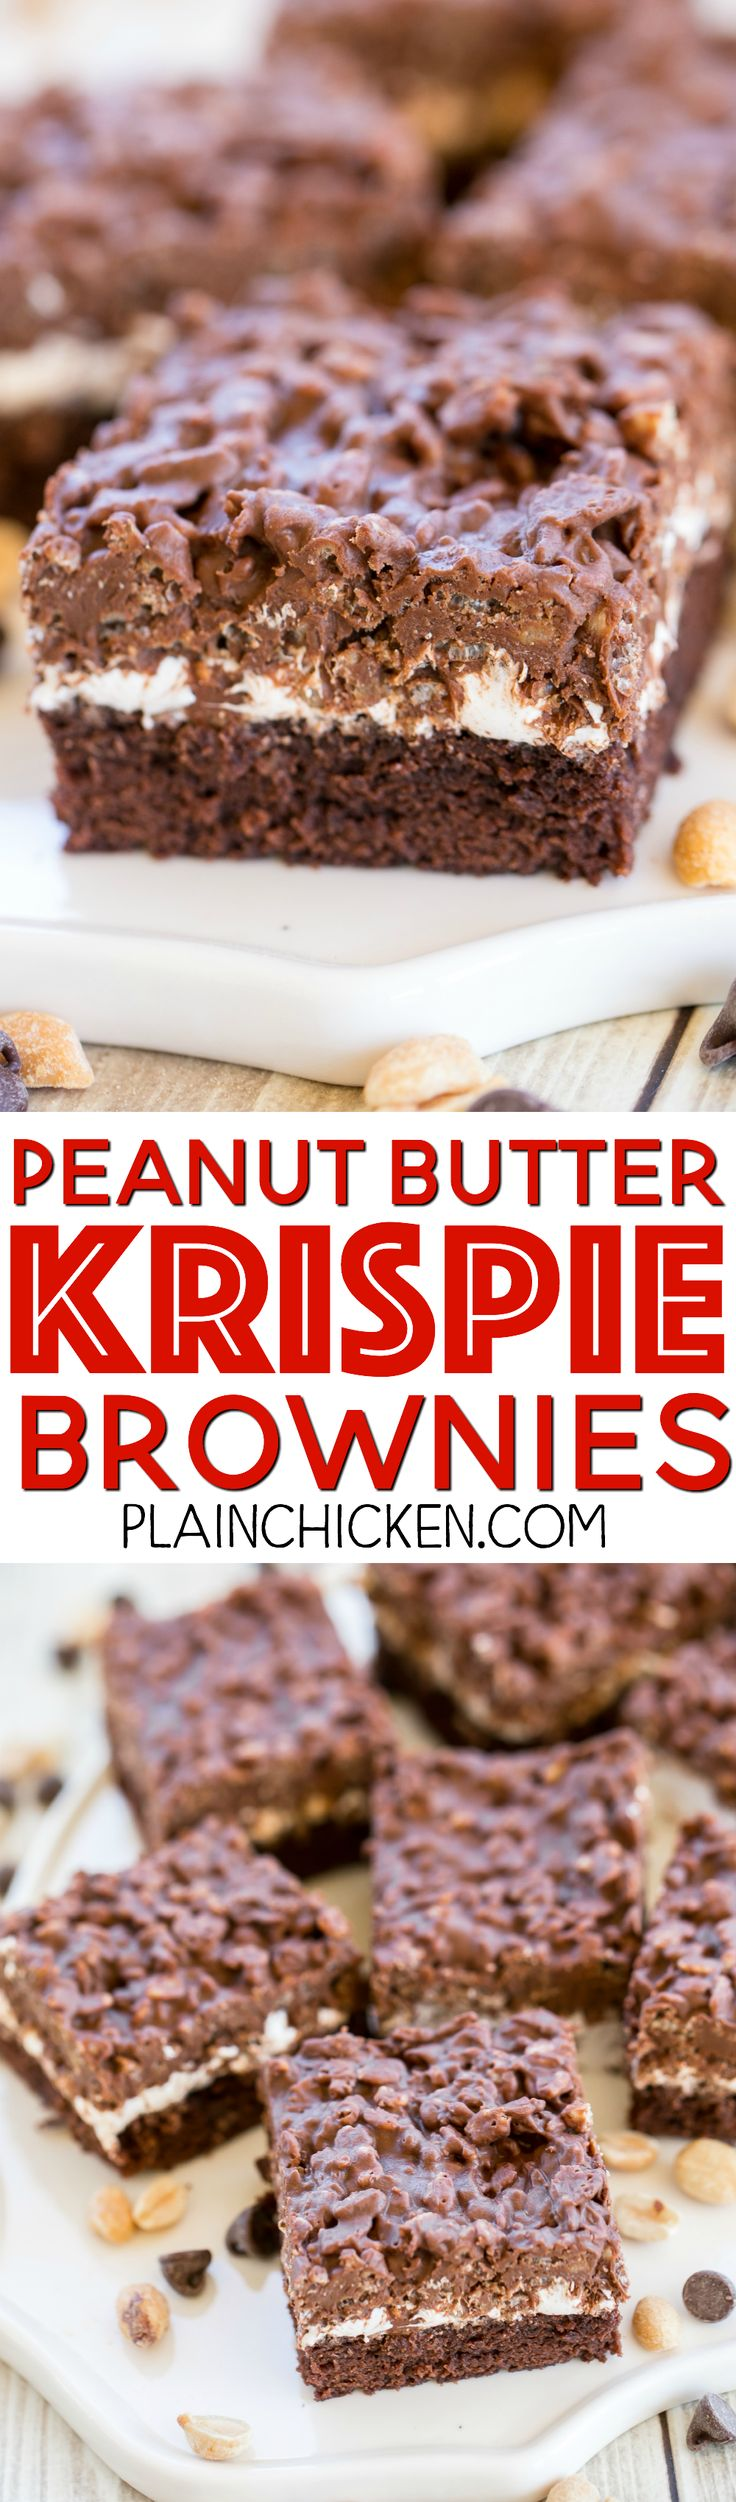 Peanut Butter Krispie Brownies - these brownies are TO-DIE-FOR! Boxed brownie mix topped with marshmallow creme and peanut butter, chocolate chips and rice krispies! These things are dangerous! Great for potlucks!! Seriously THE BEST! Such a great and easy dessert recipe.